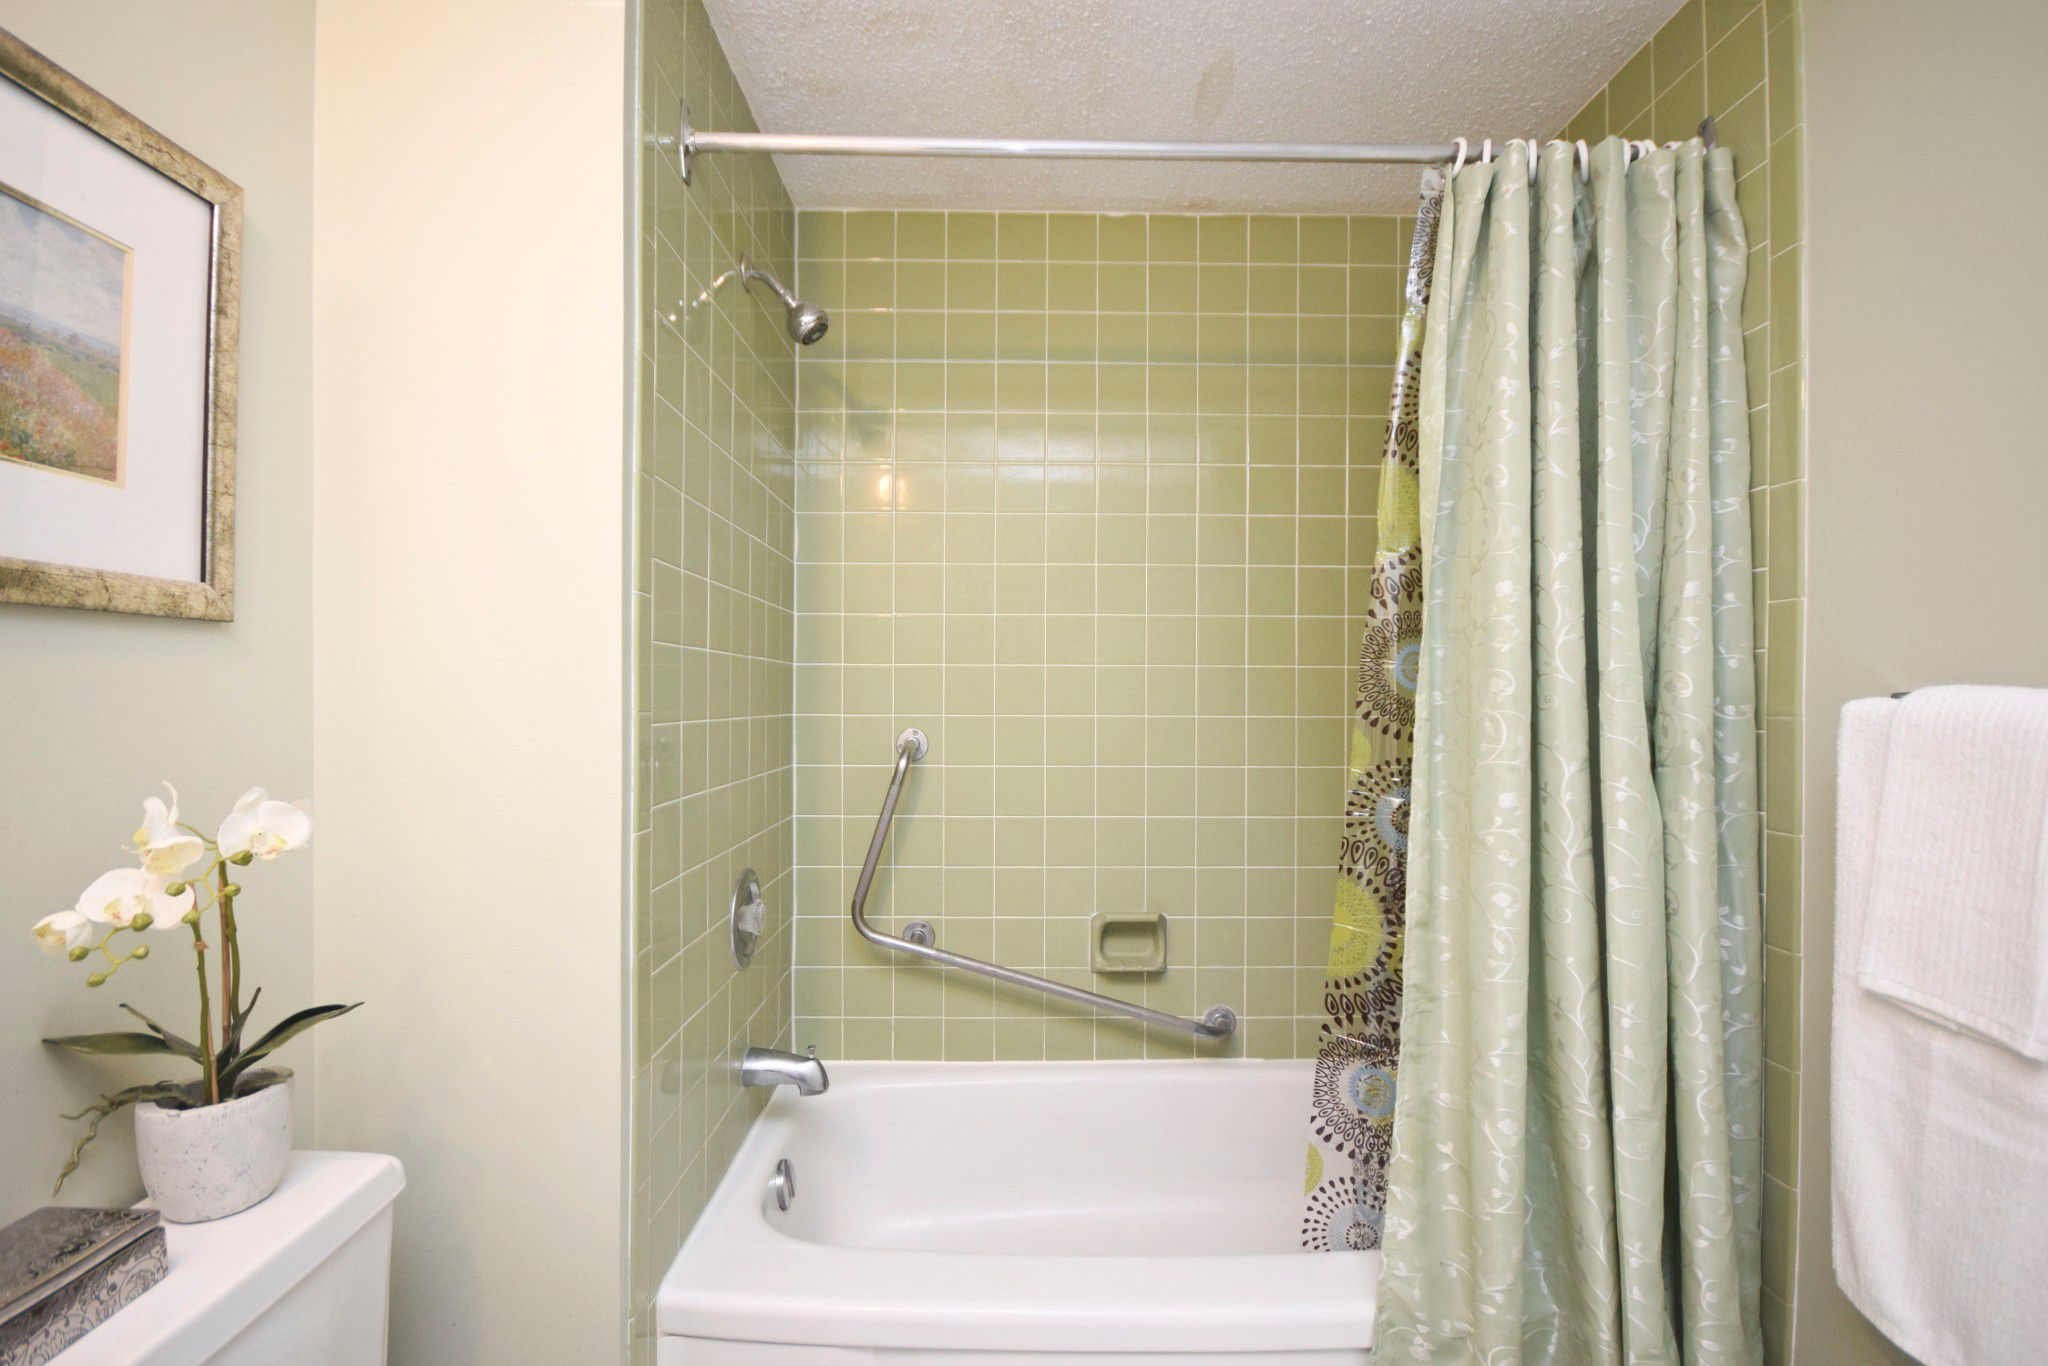 Photo 36: Photos: 515 1465 BASELINE Road in Ottawa: Copeland Park House for sale : MLS®# 1133550